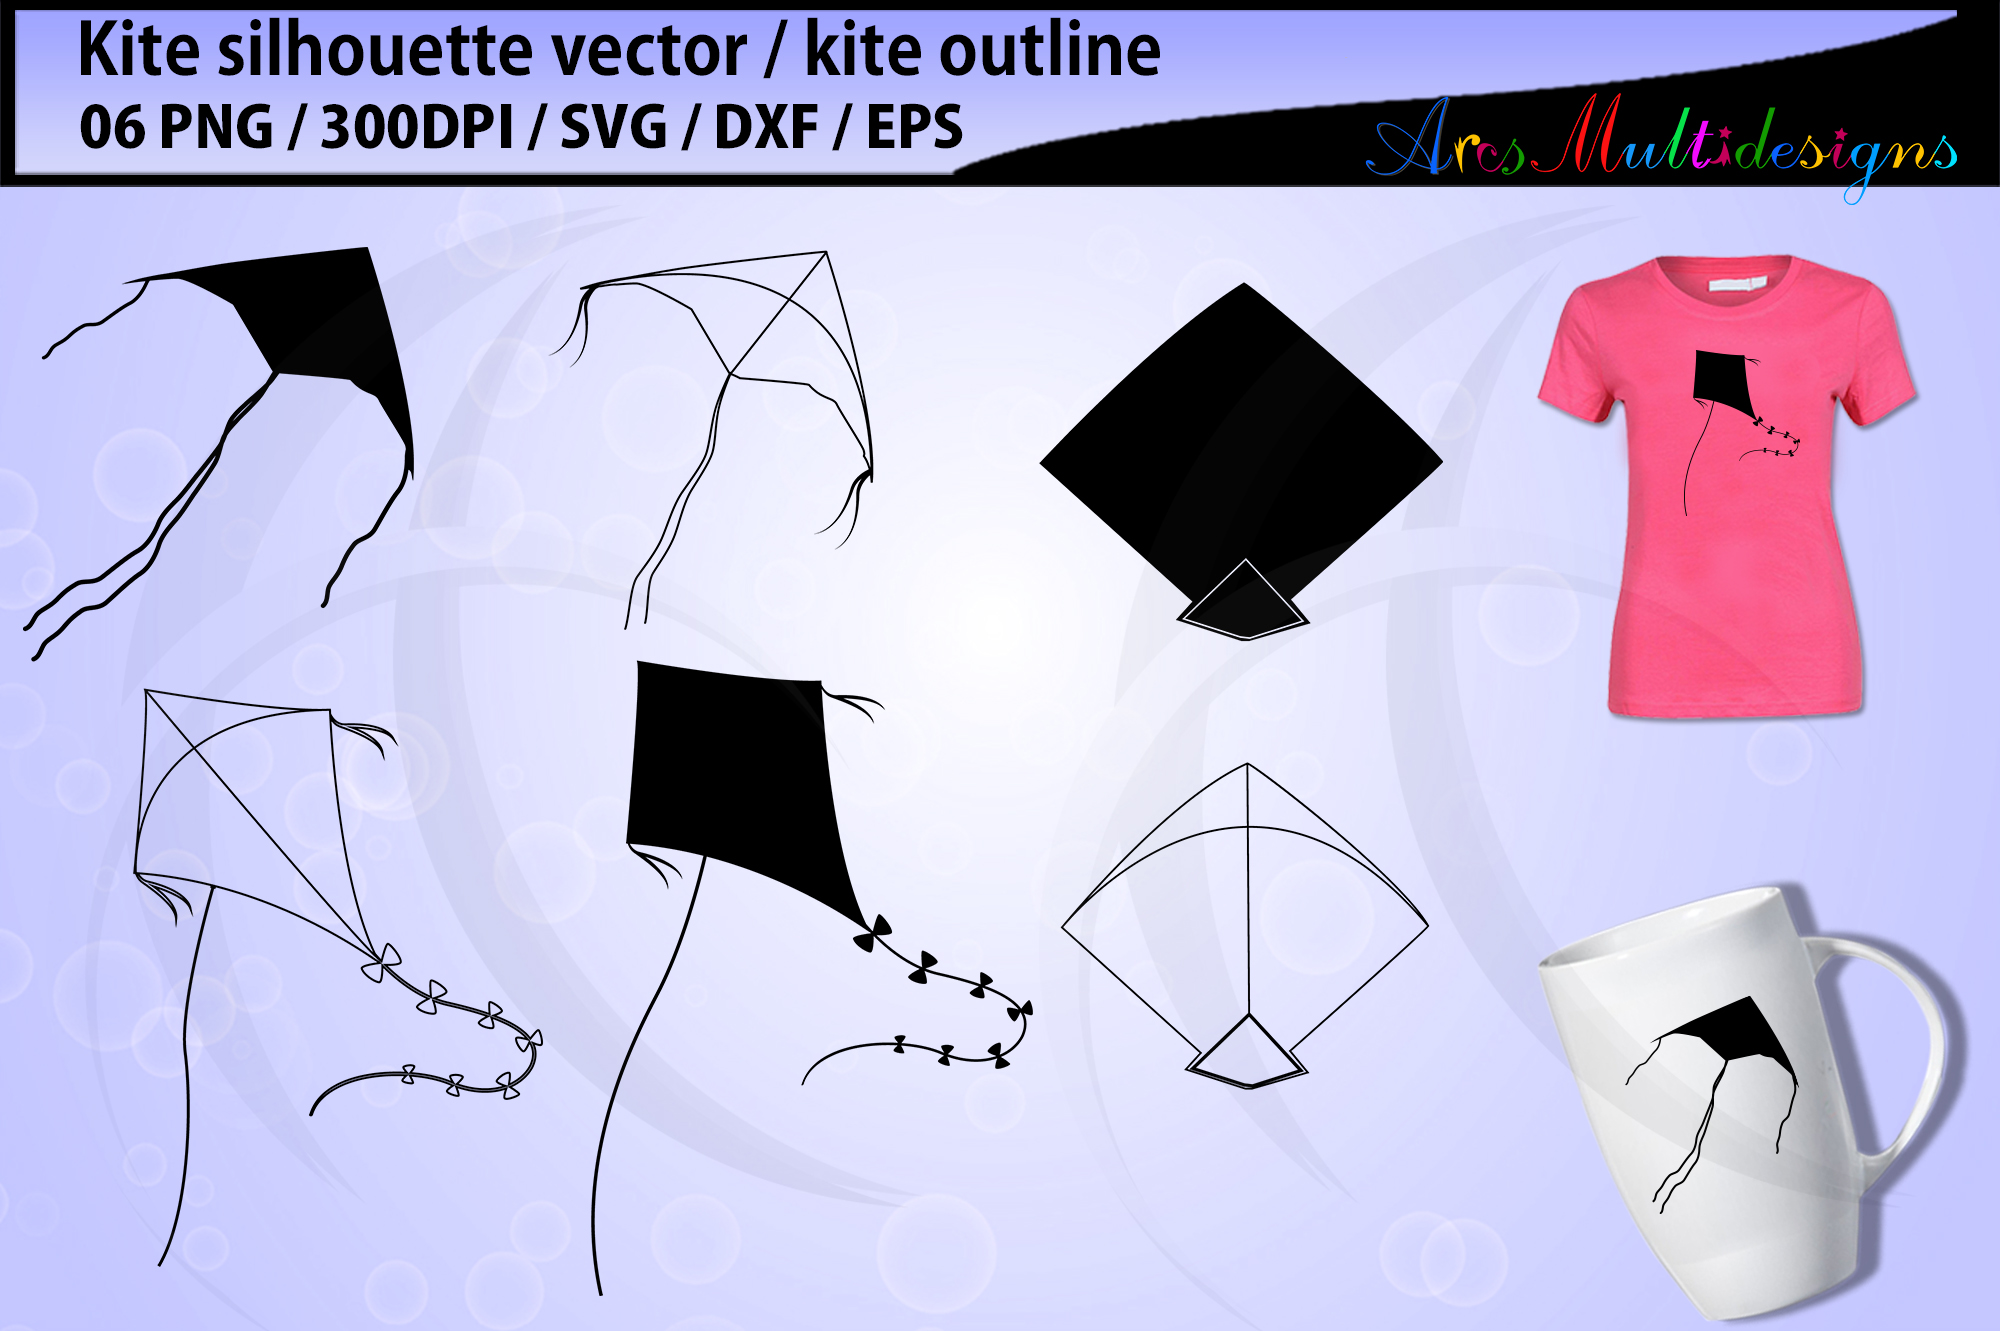 Download Free Kite Kite Silhouette Kite Graphic By Arcs Multidesigns for Cricut Explore, Silhouette and other cutting machines.